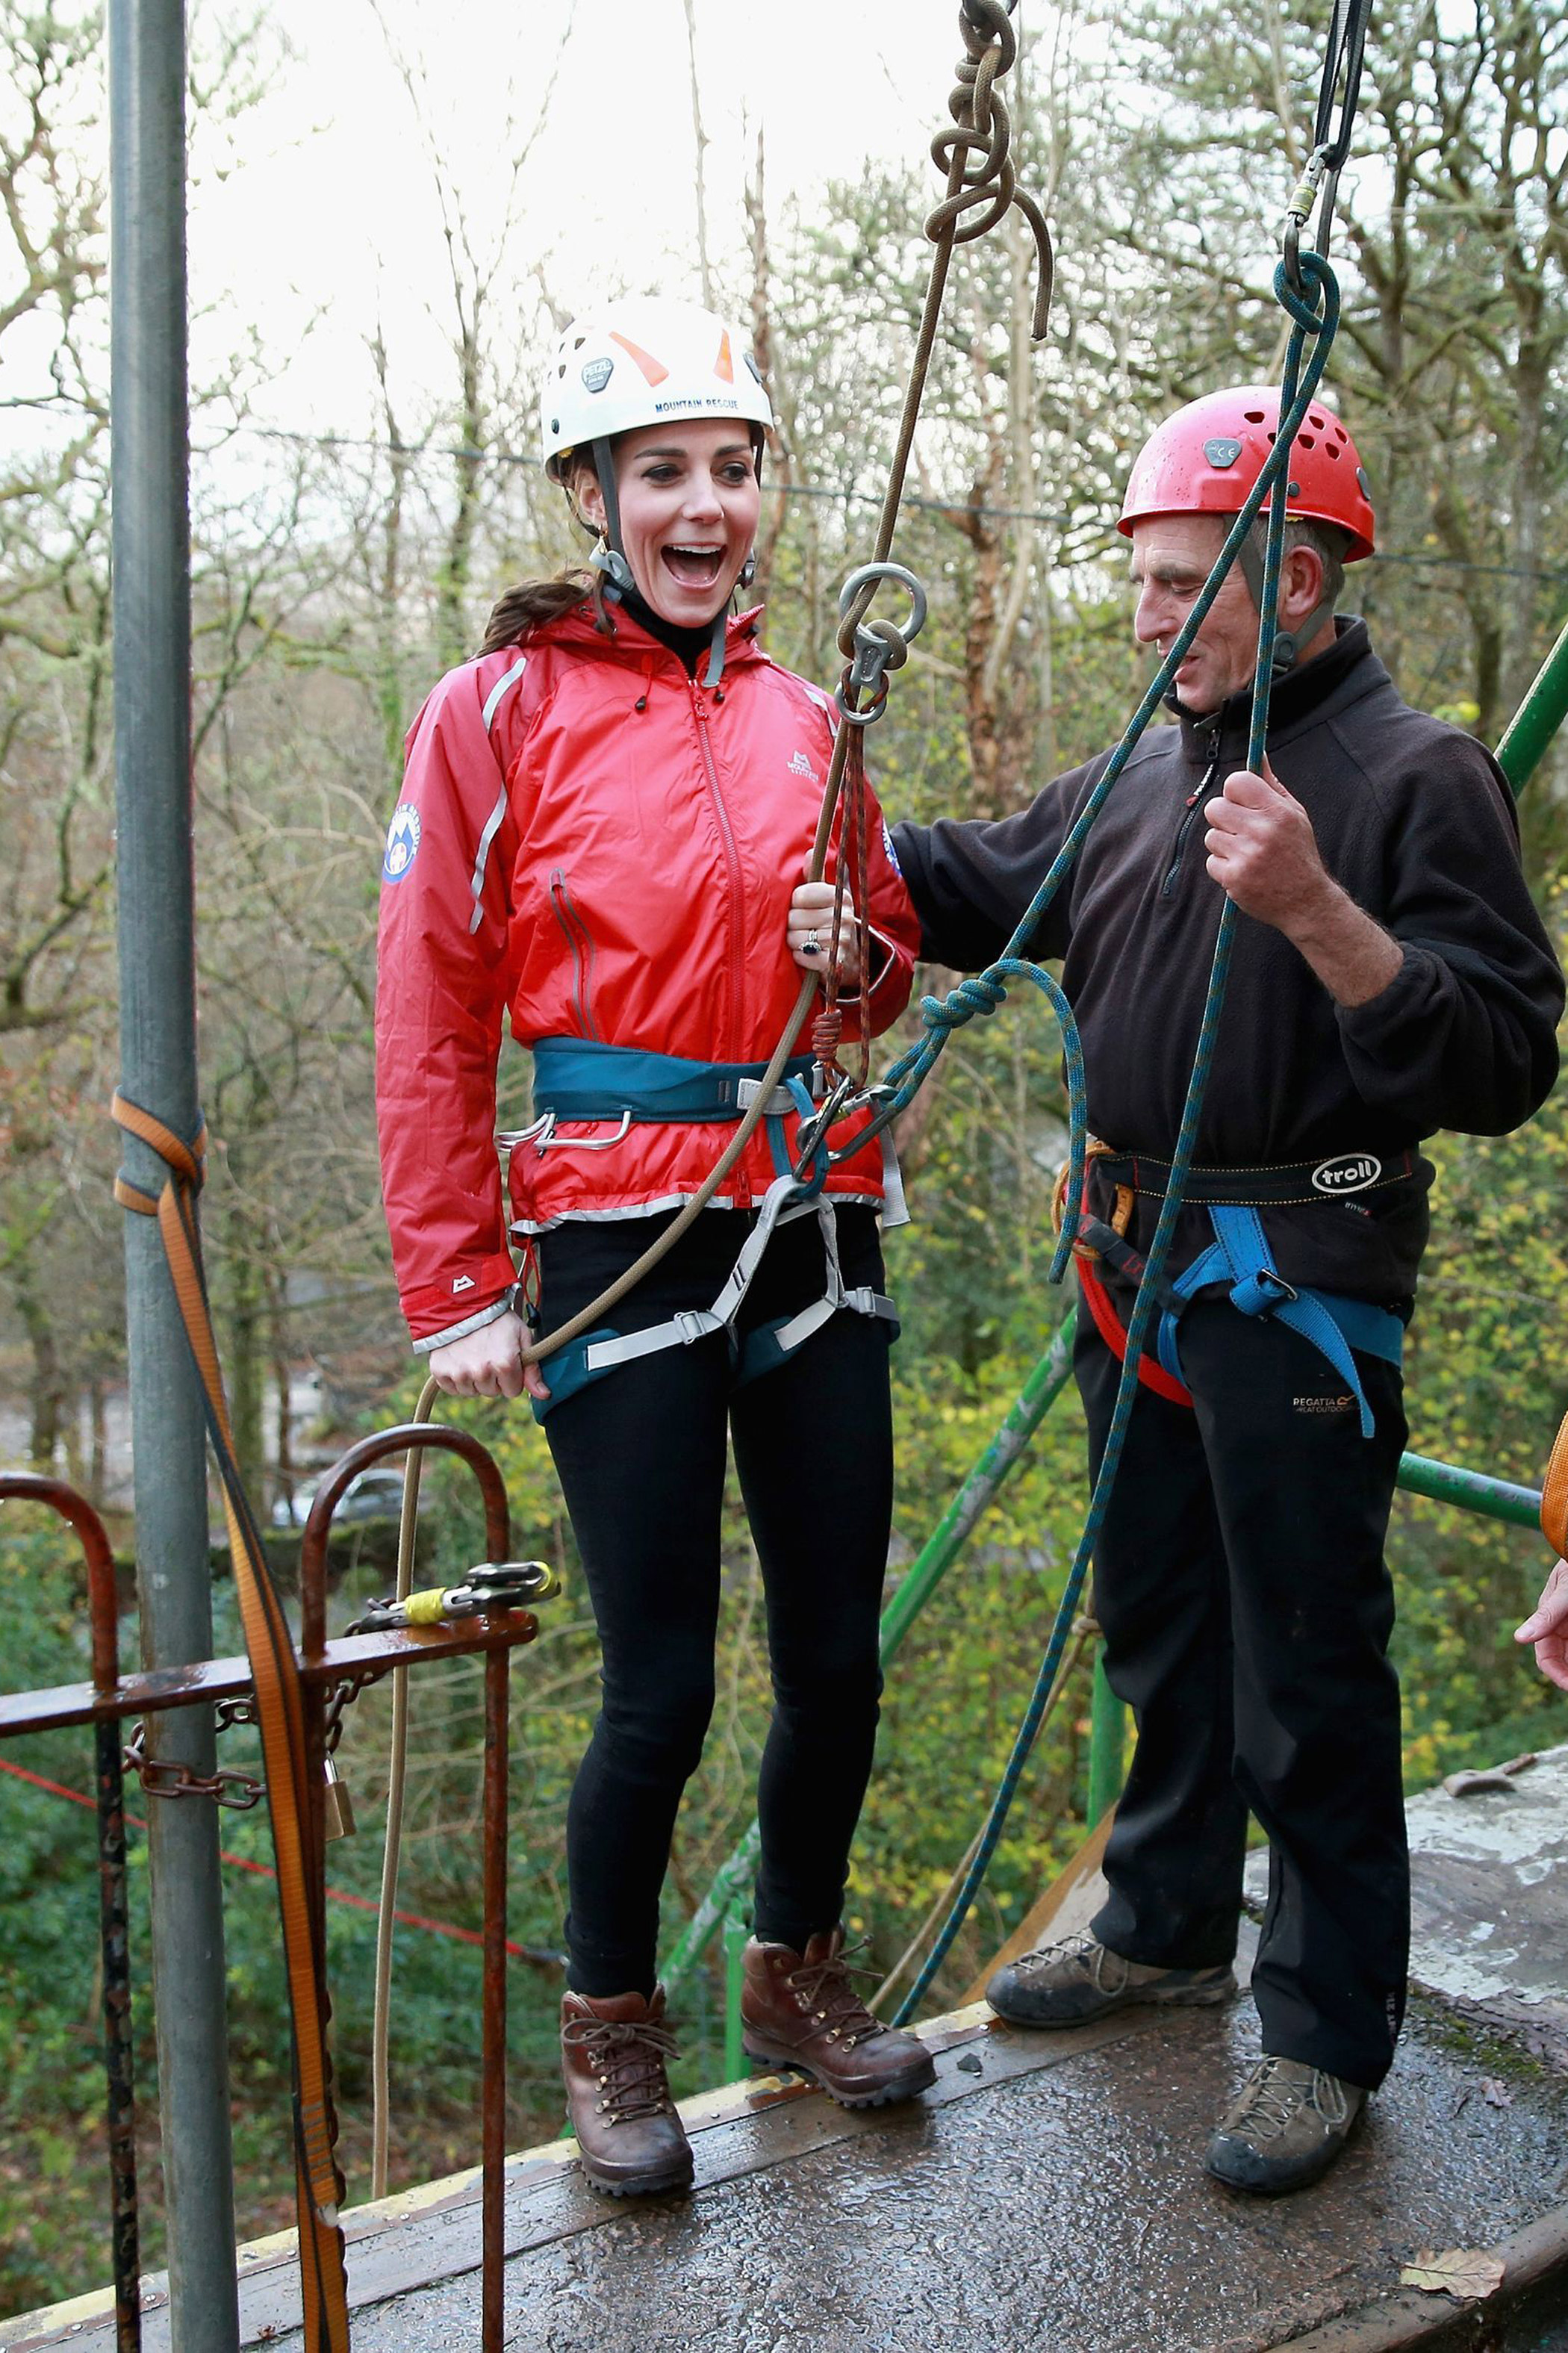 Princess Kate, Duchess of Cambridge, prepares to abseiling down a wall during a visit to the Towers Residential Outdoor Education Centre on Nov. 20.